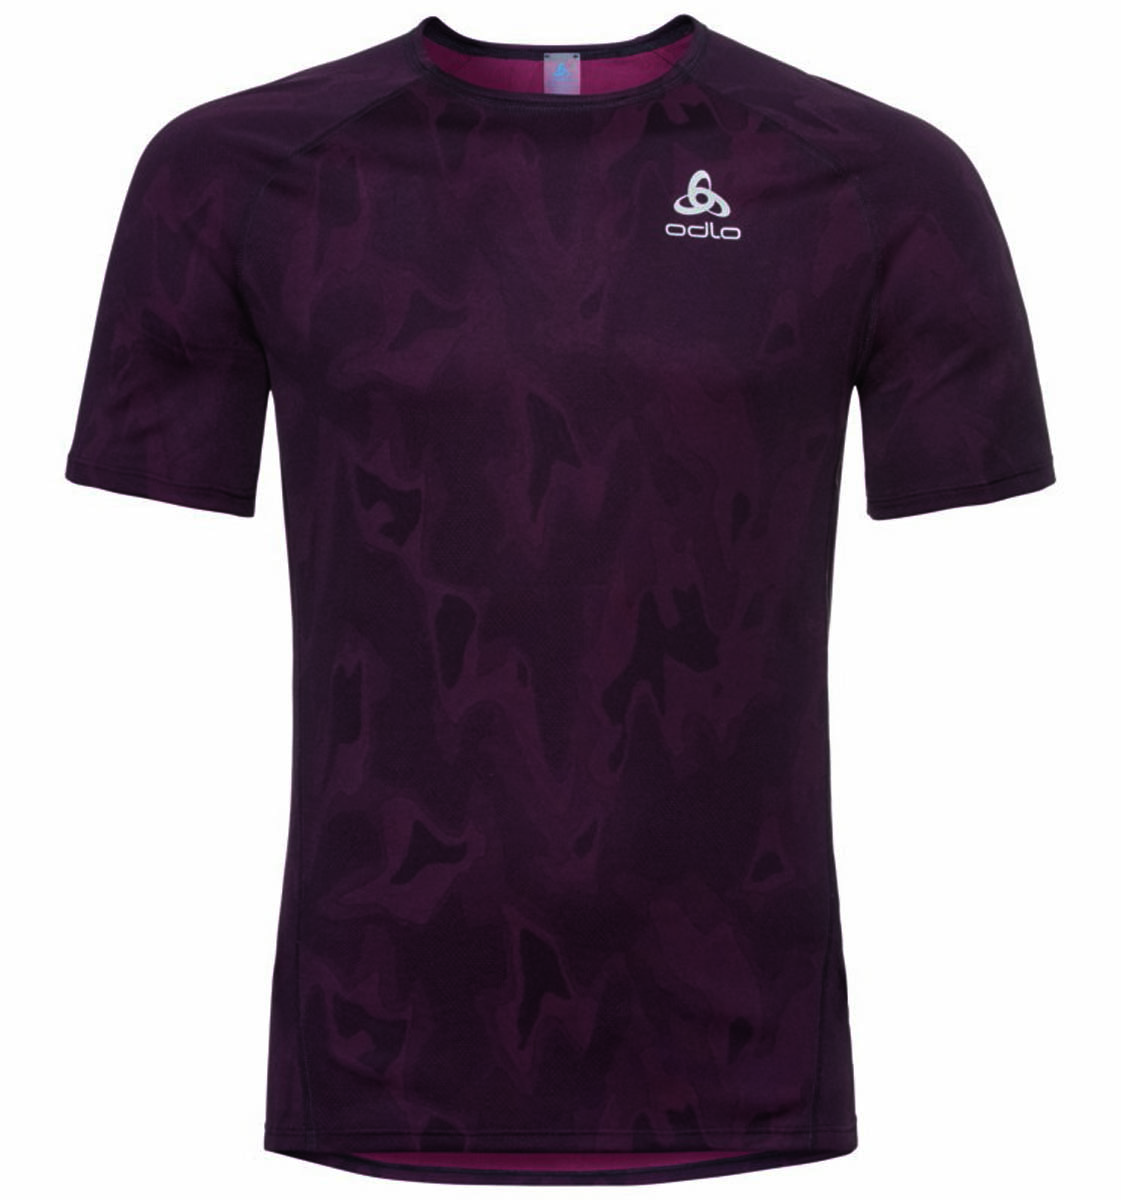 Odlo collection automne hiver 2018